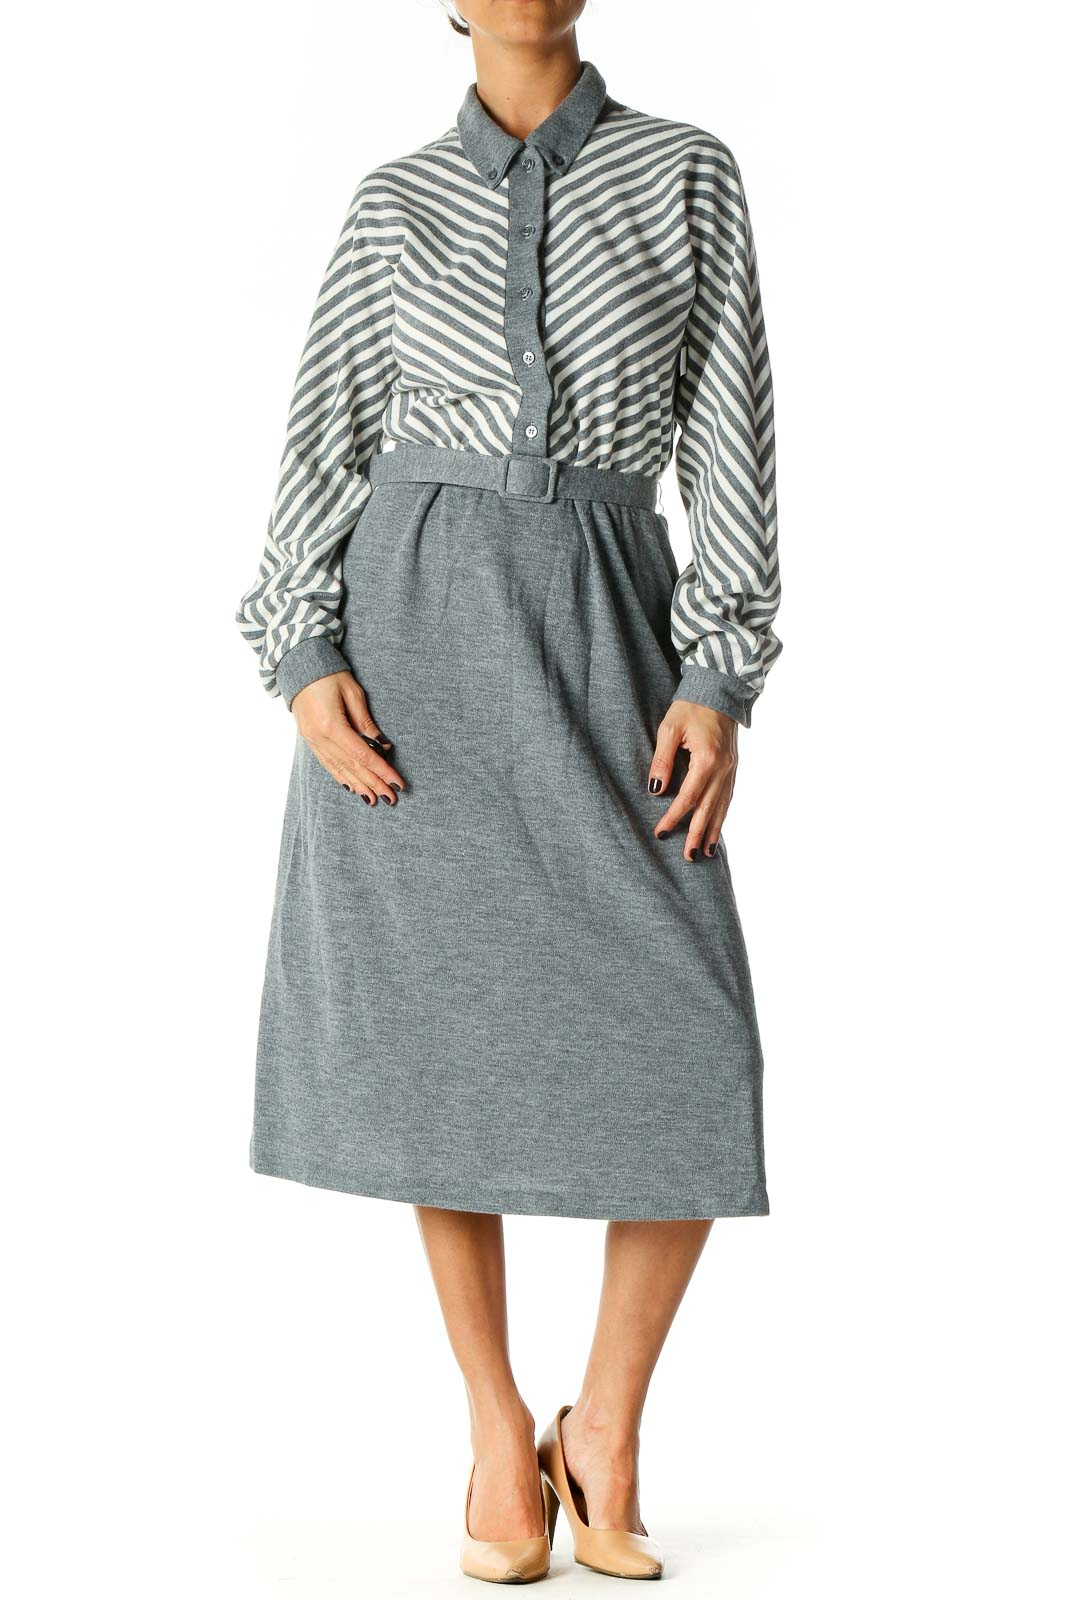 Gray Casual Fit & Flare Dress Front